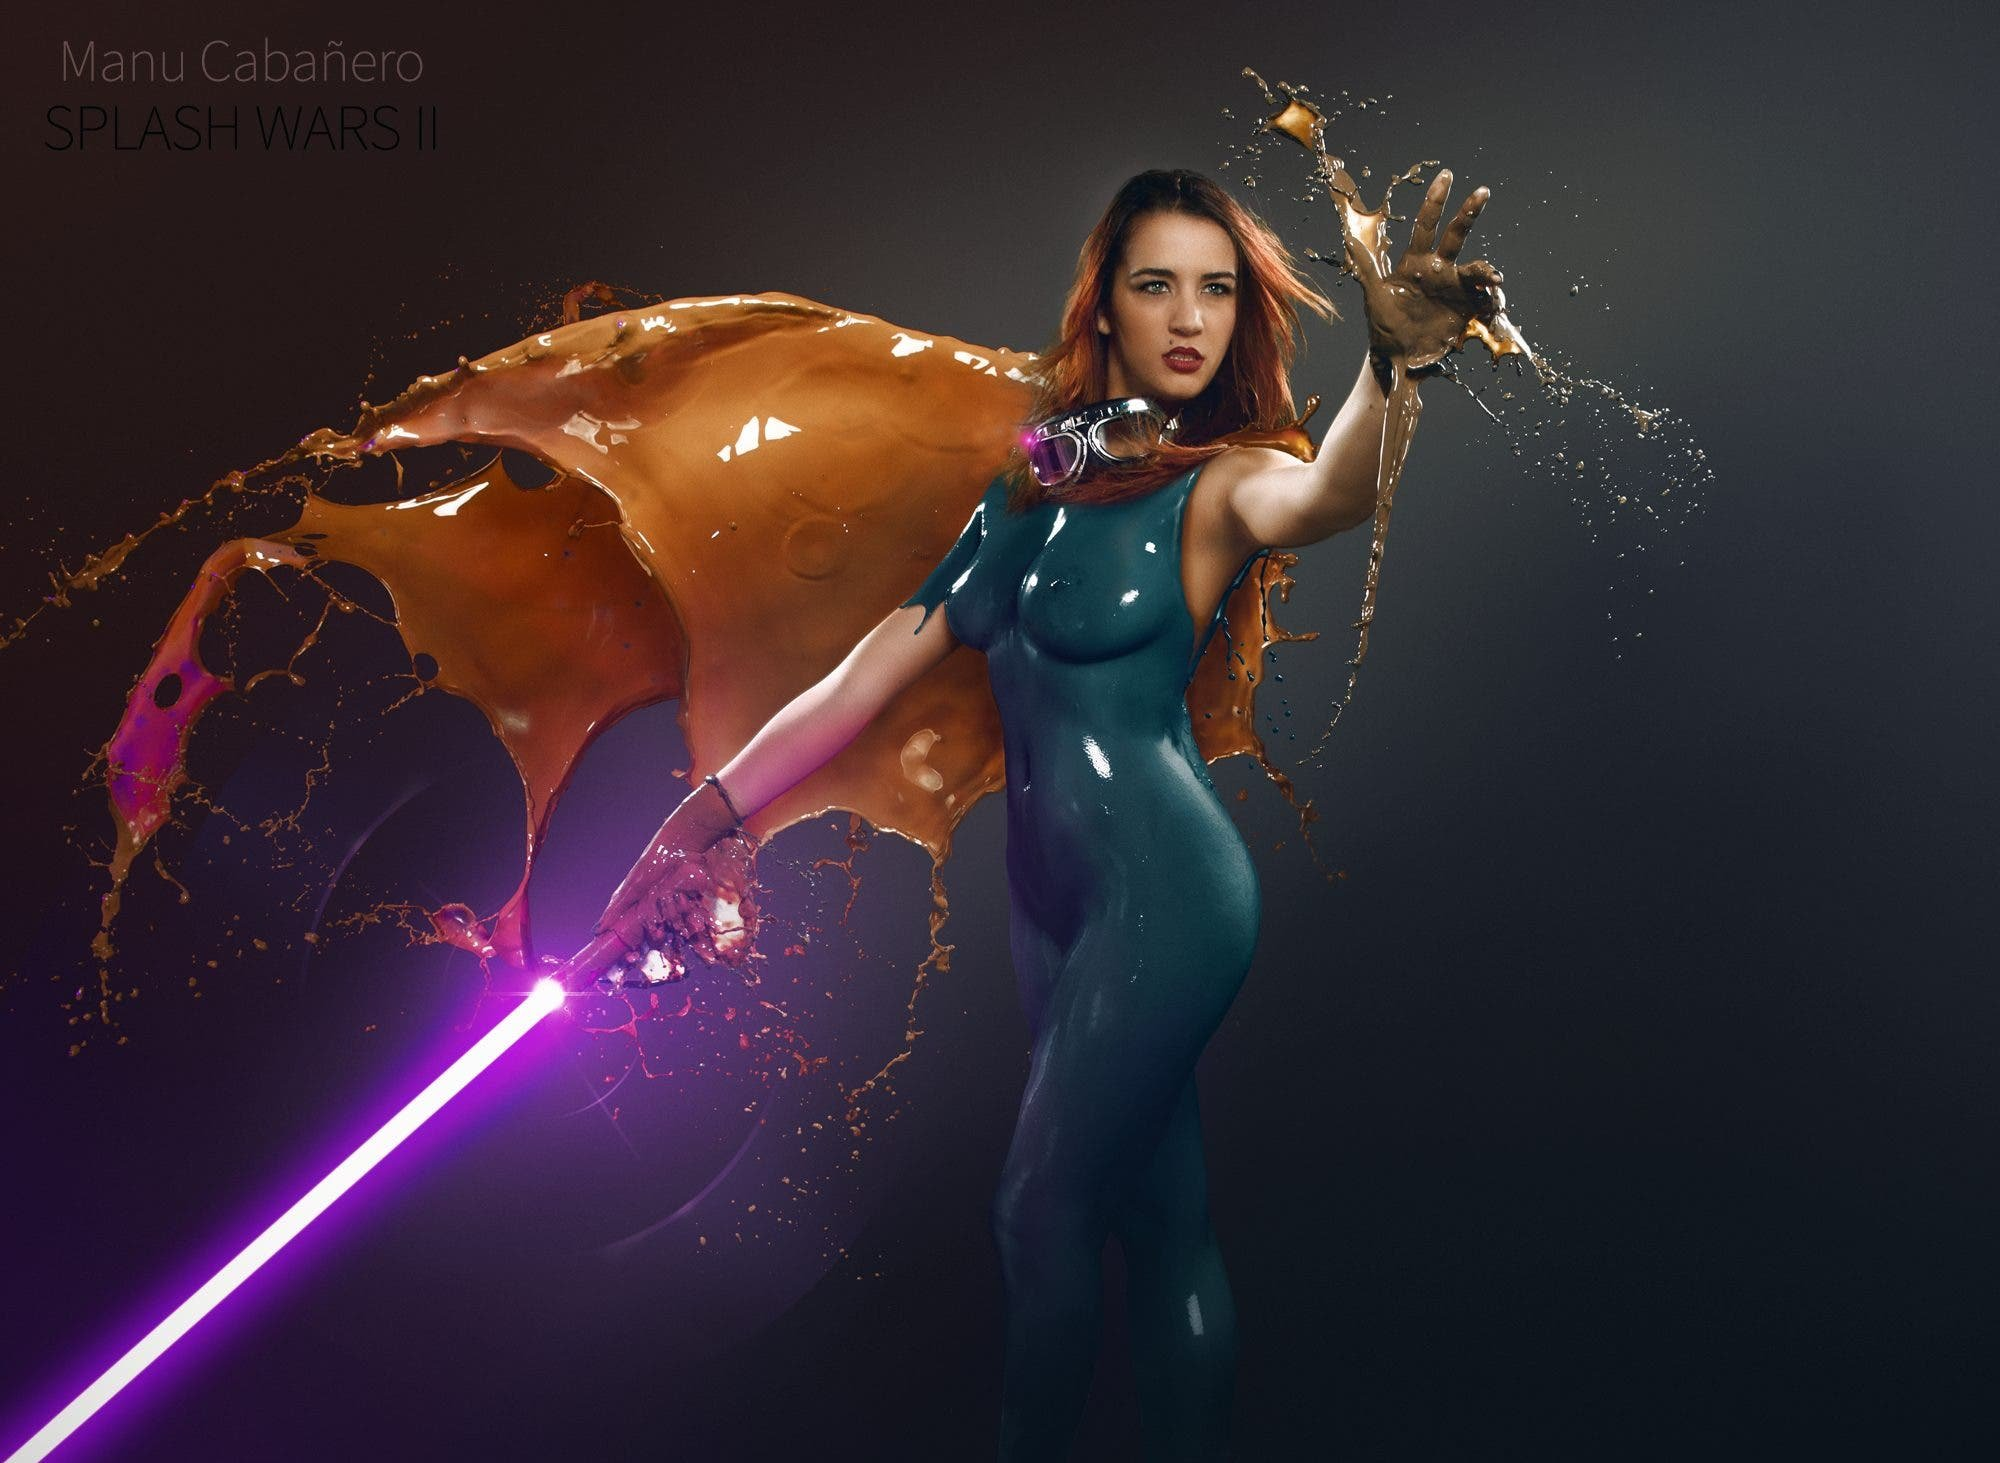 Manu Cabanero's Splash Wars II Continues to Pay Homage to Star Wars (NSFW)